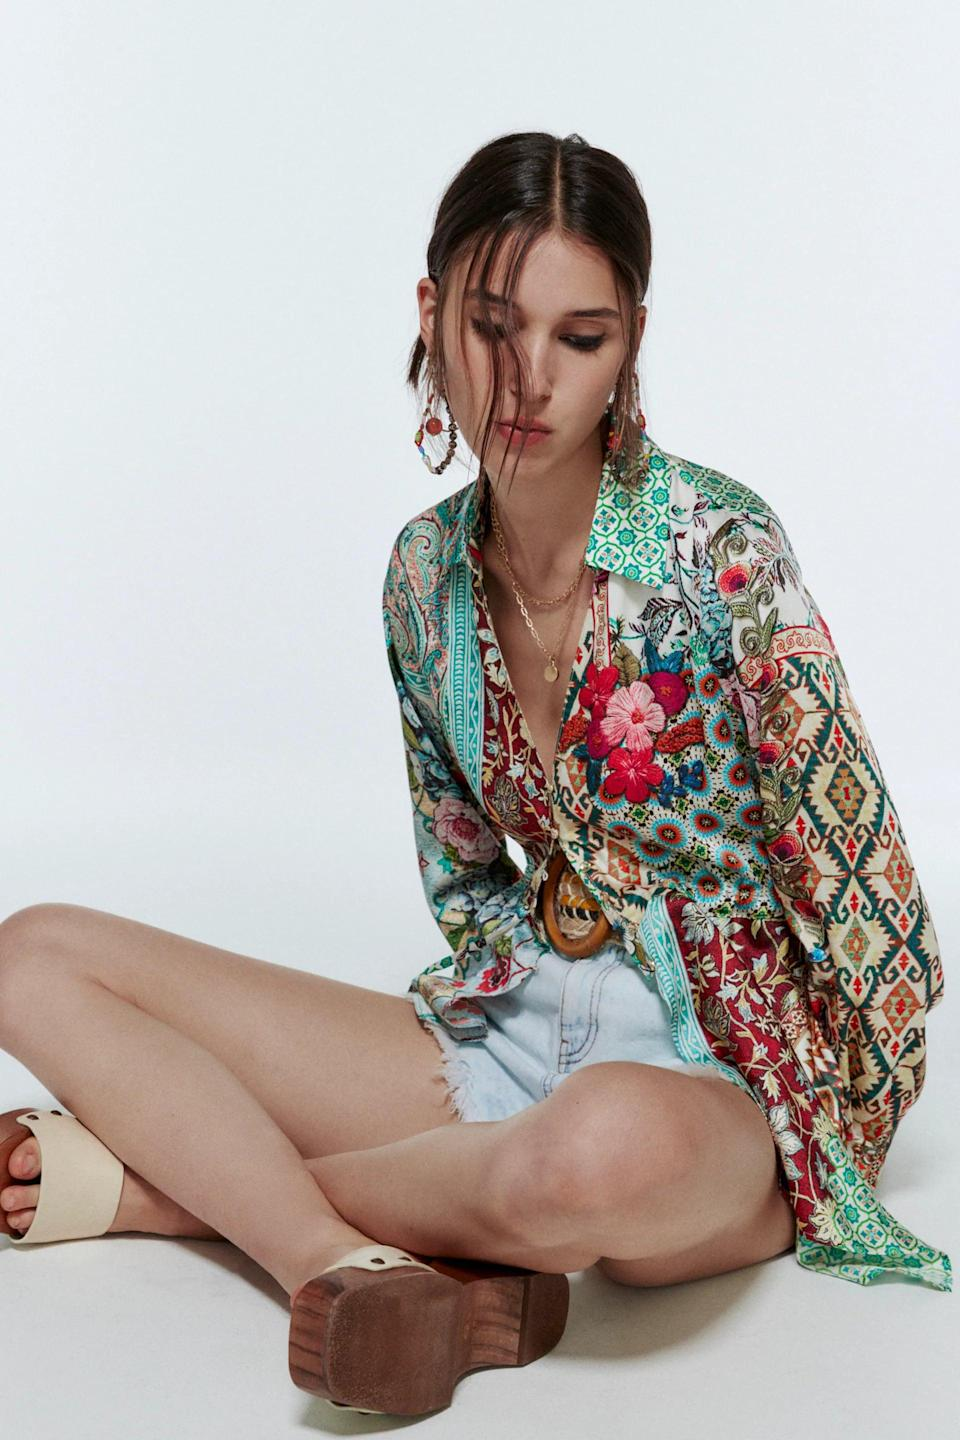 <p>Make sure to pack the <span>Zara Patchwork Printed Shirt</span> ($45), because it's fun and you can wear it a few different ways. We'd style it with trousers and heels to dinner, or with shorts and sandals to the beach.</p>